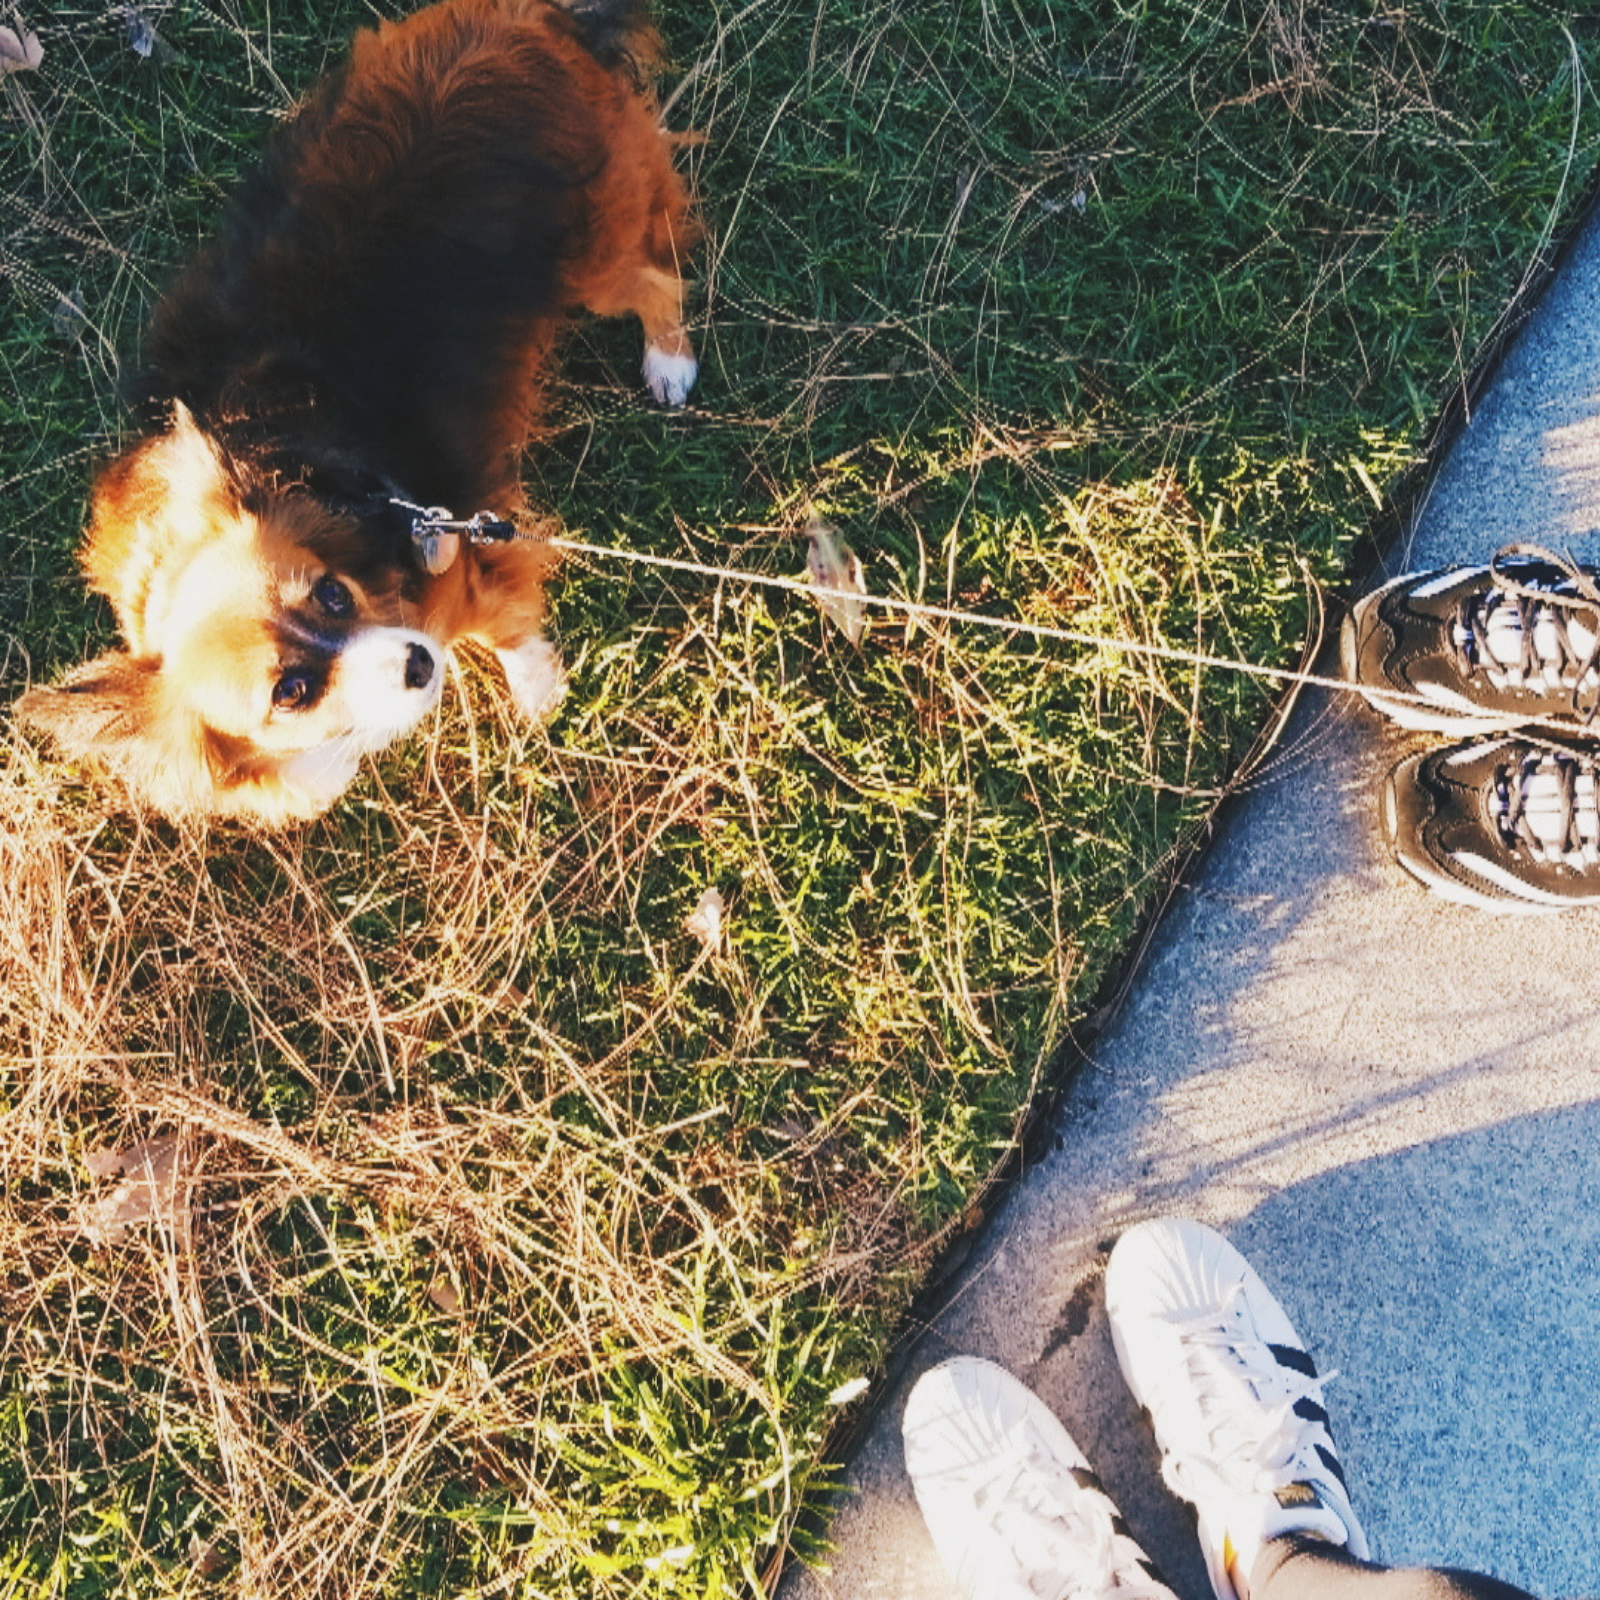 A cute dog on a leash with two pairs of shoes in frame